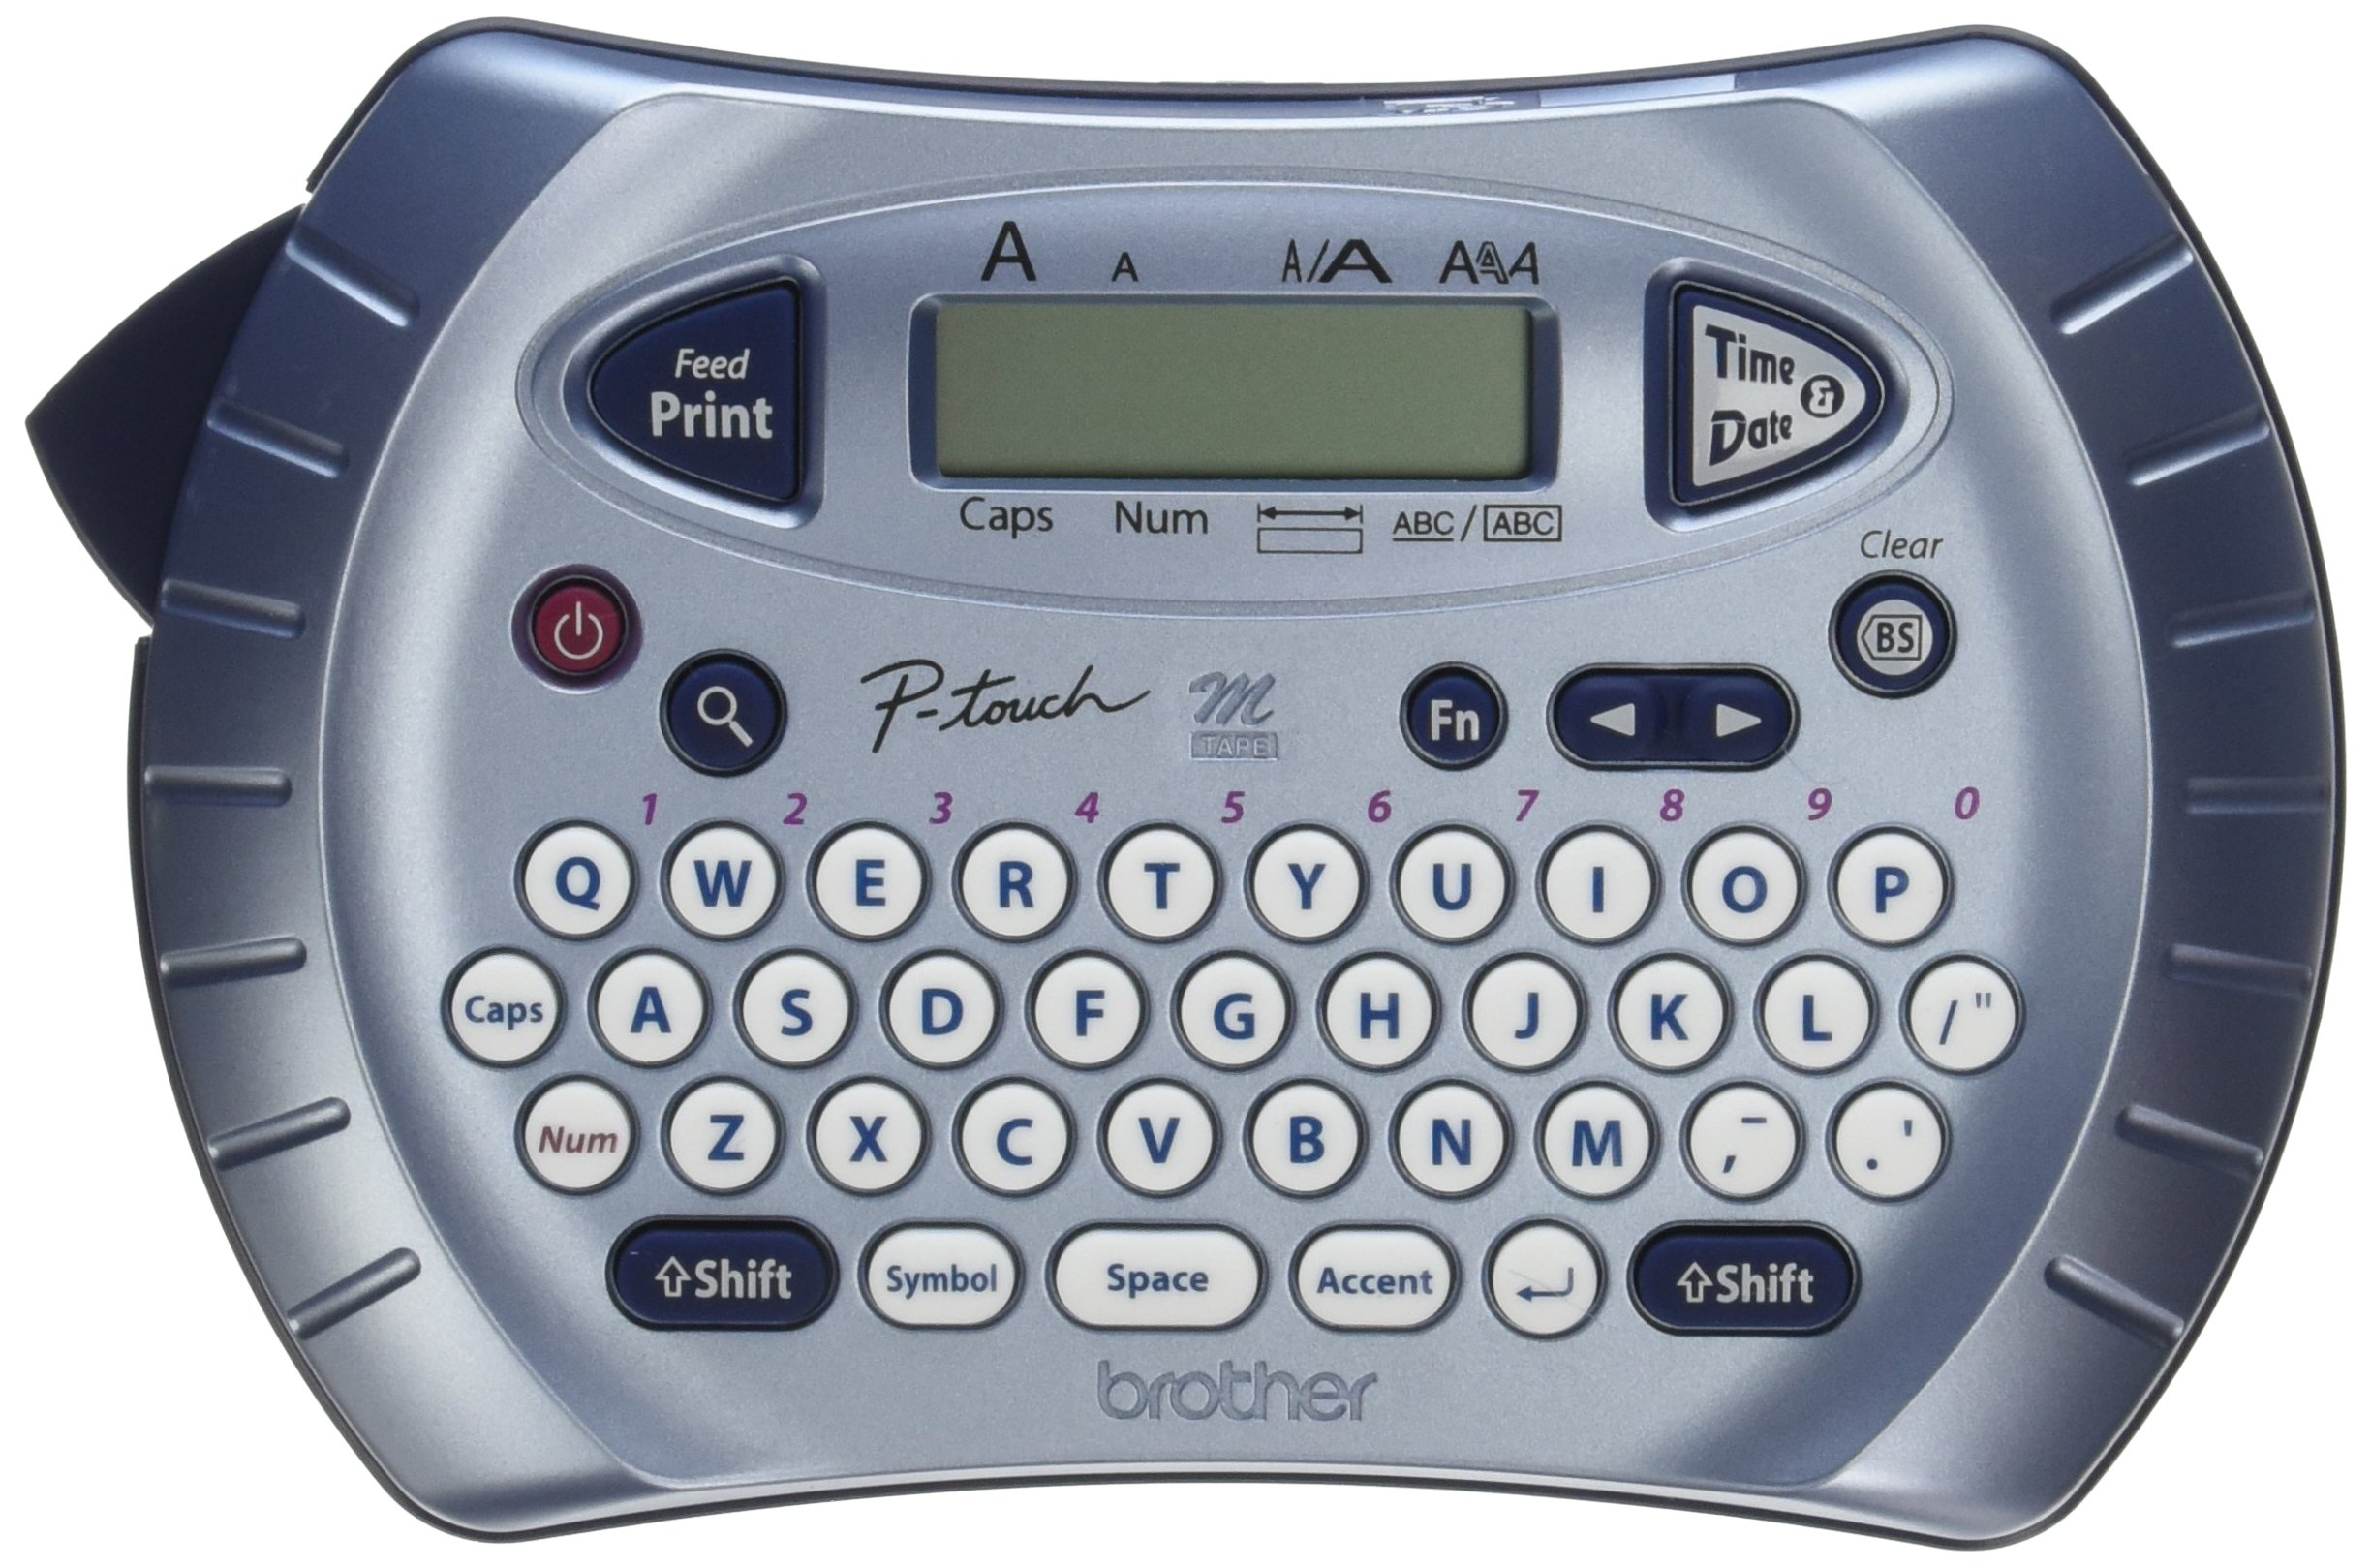 Brother P-touch Label Maker, Personal Handheld Labeler, PT70BM, Prints 1 Font in 6 Sizes & 9 Type Styles, Two-Line Printing by Brother